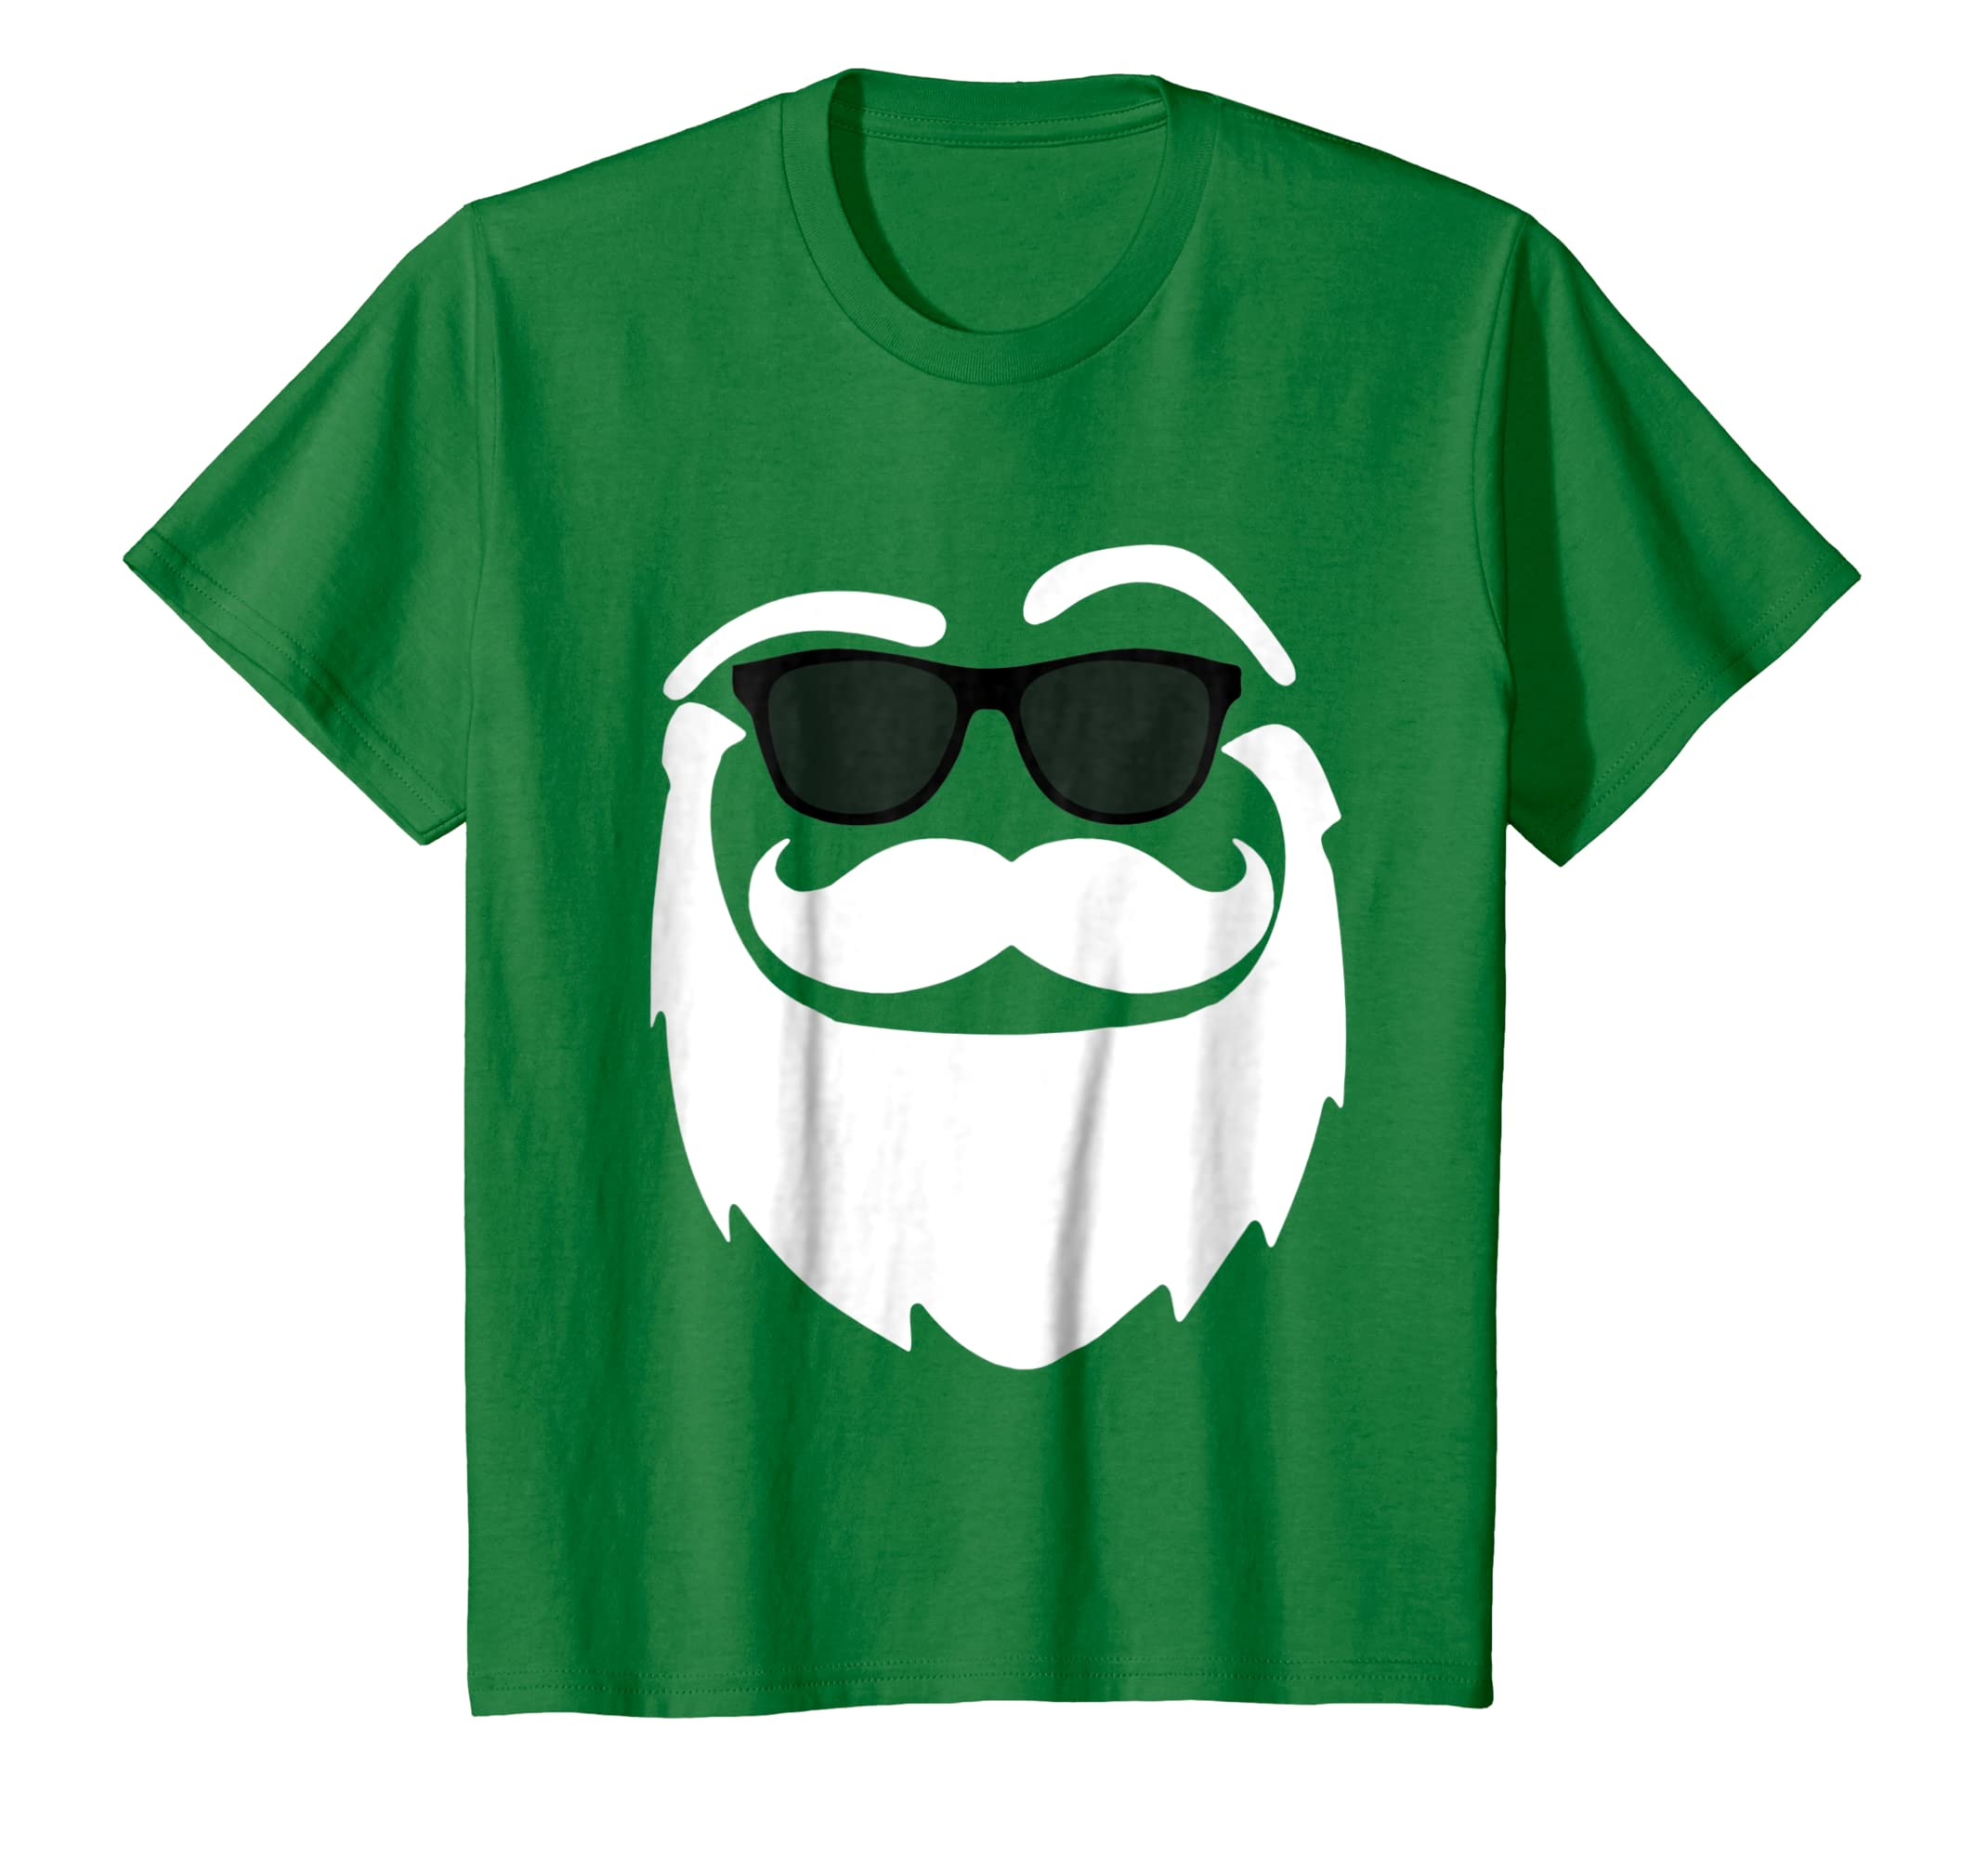 a654a4f3 Amazon Com Cool Santa Claus Face Funny Christmas T Shirt Clothing